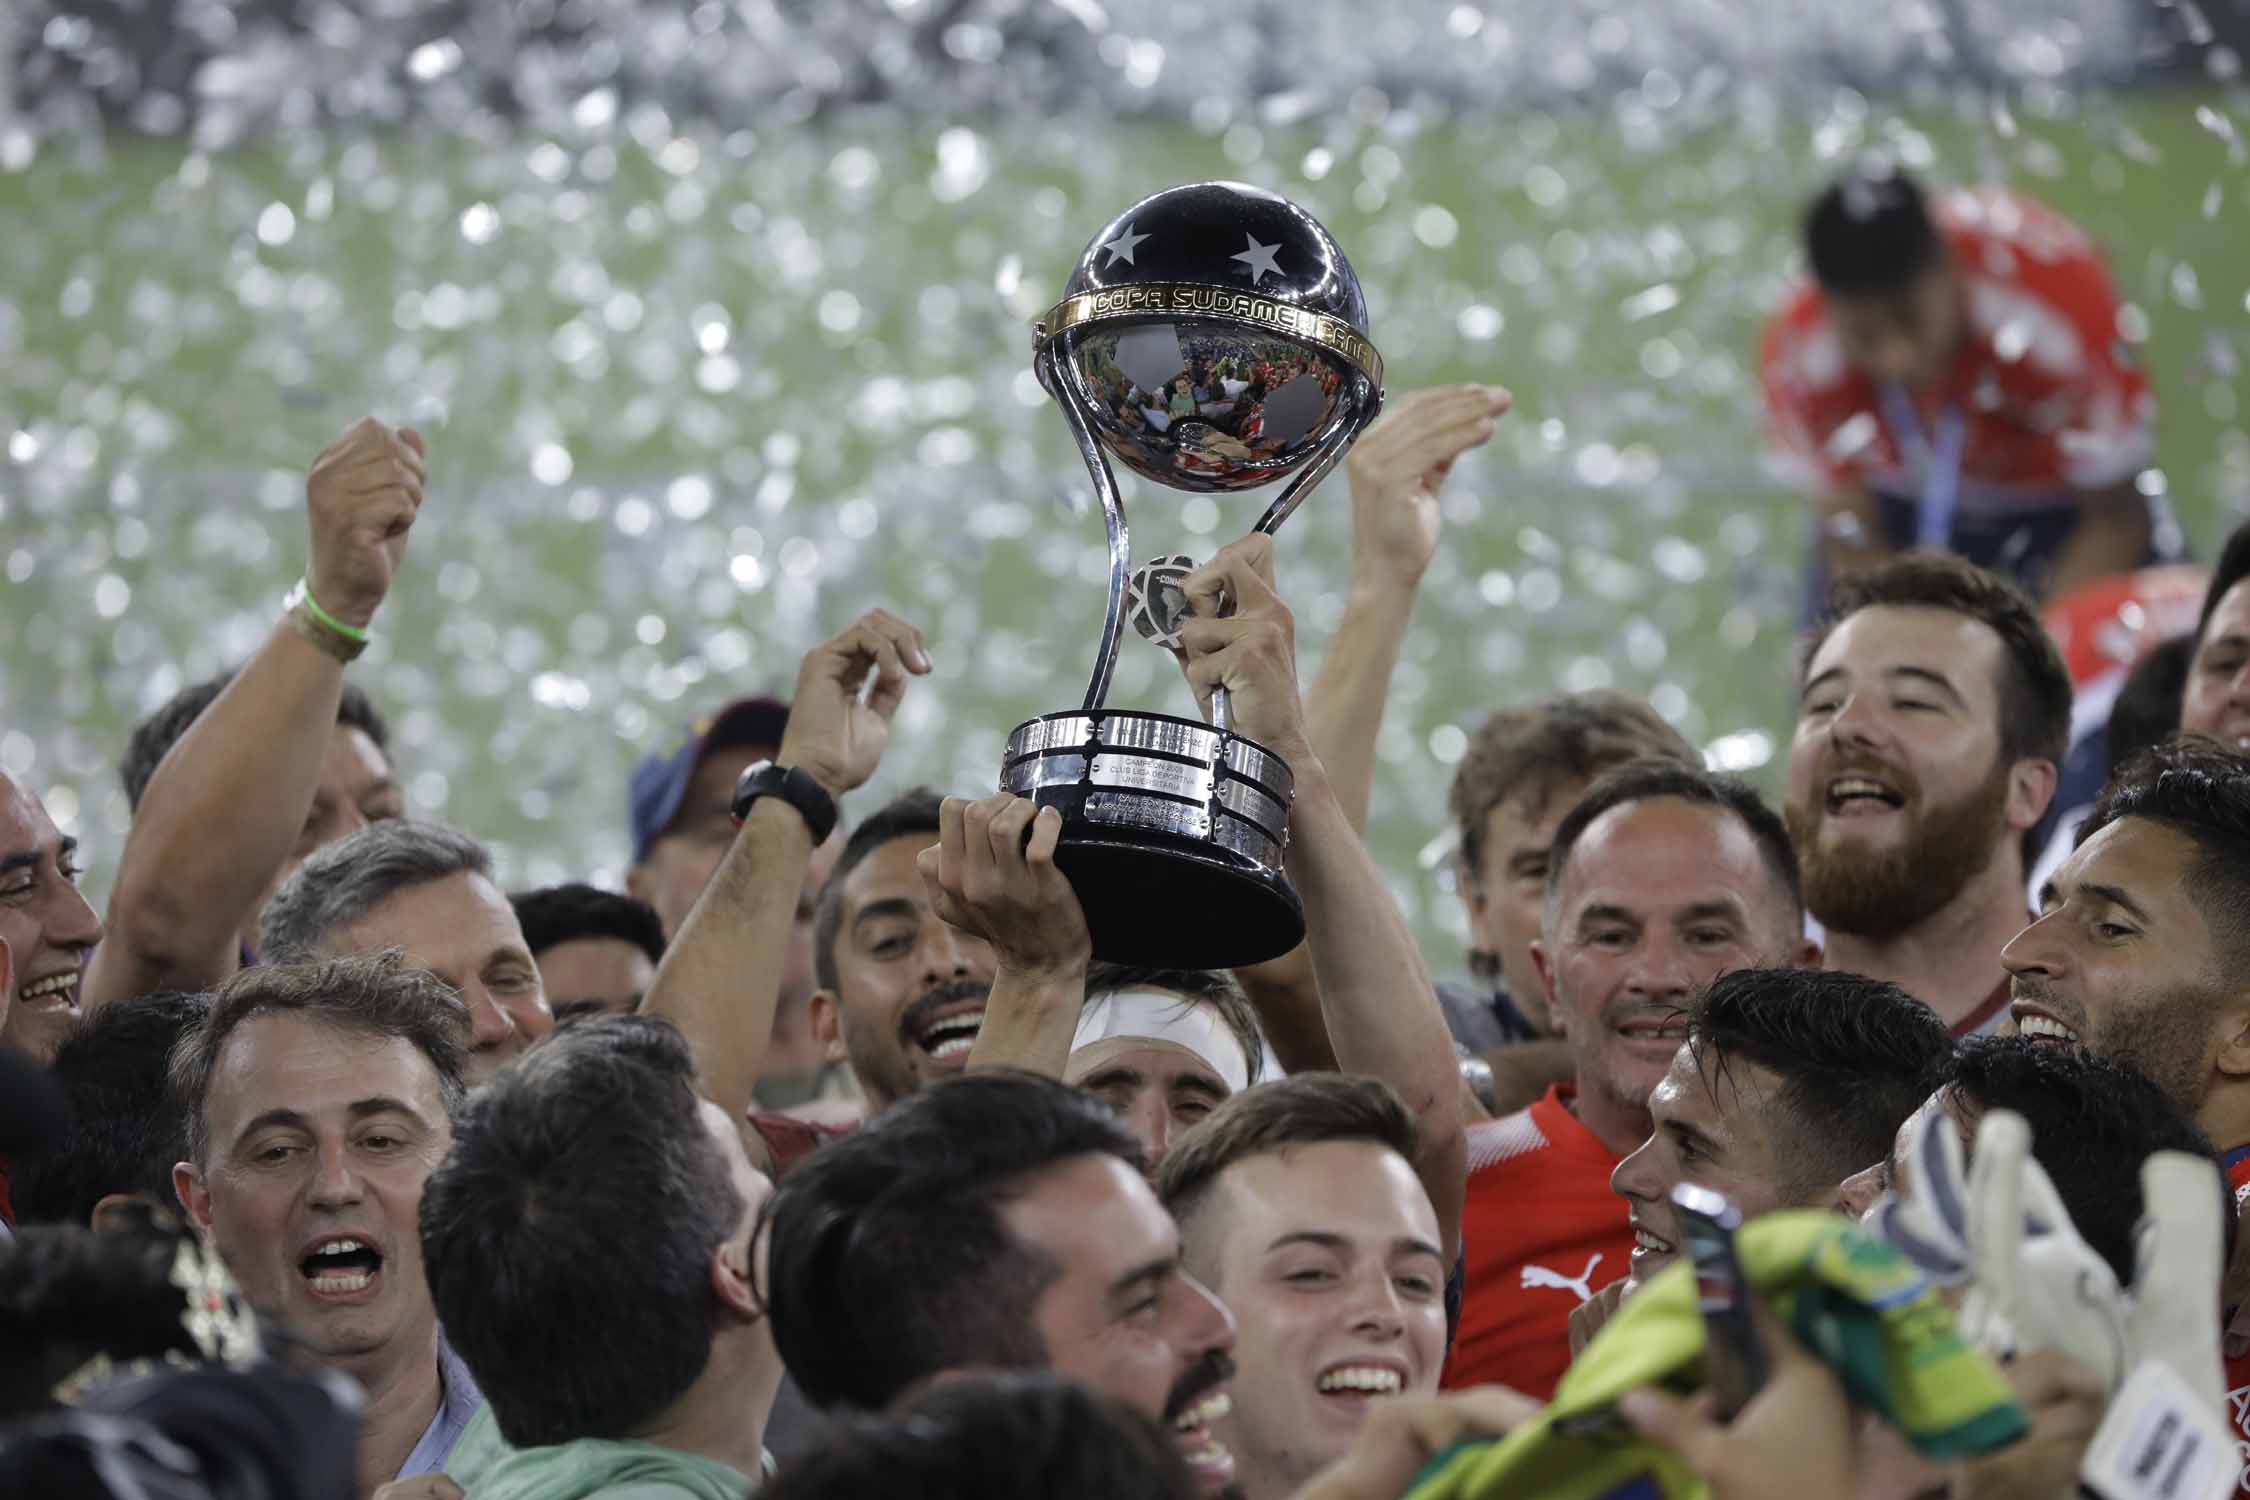 Argentina's Independiente win Copa Sudamericana in Rio